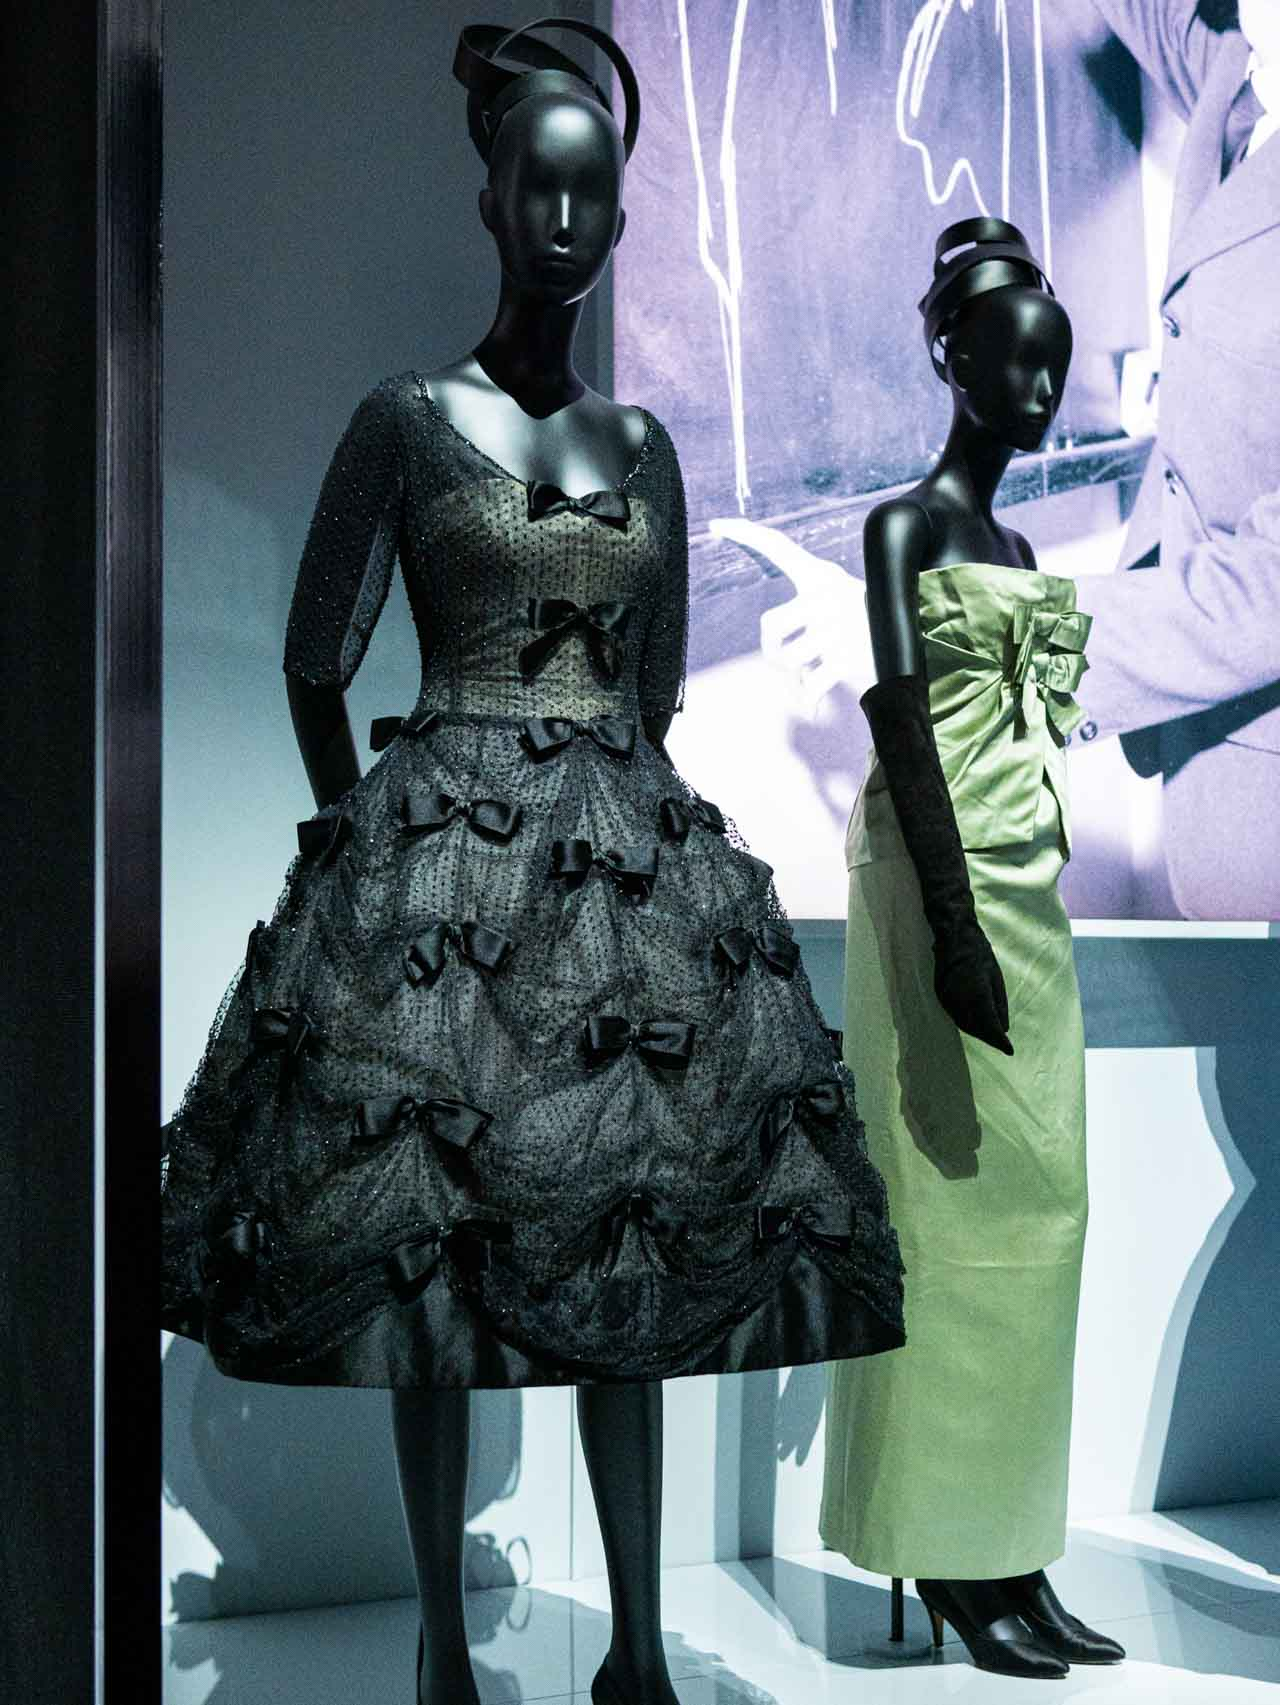 Yves Saint Laurent for Christian Dior. Black Bal Masqué dress, 1958. Green Soirée Intime dress, 1960. Taken at the V&A exhibition © The Cutting Class, 2019.